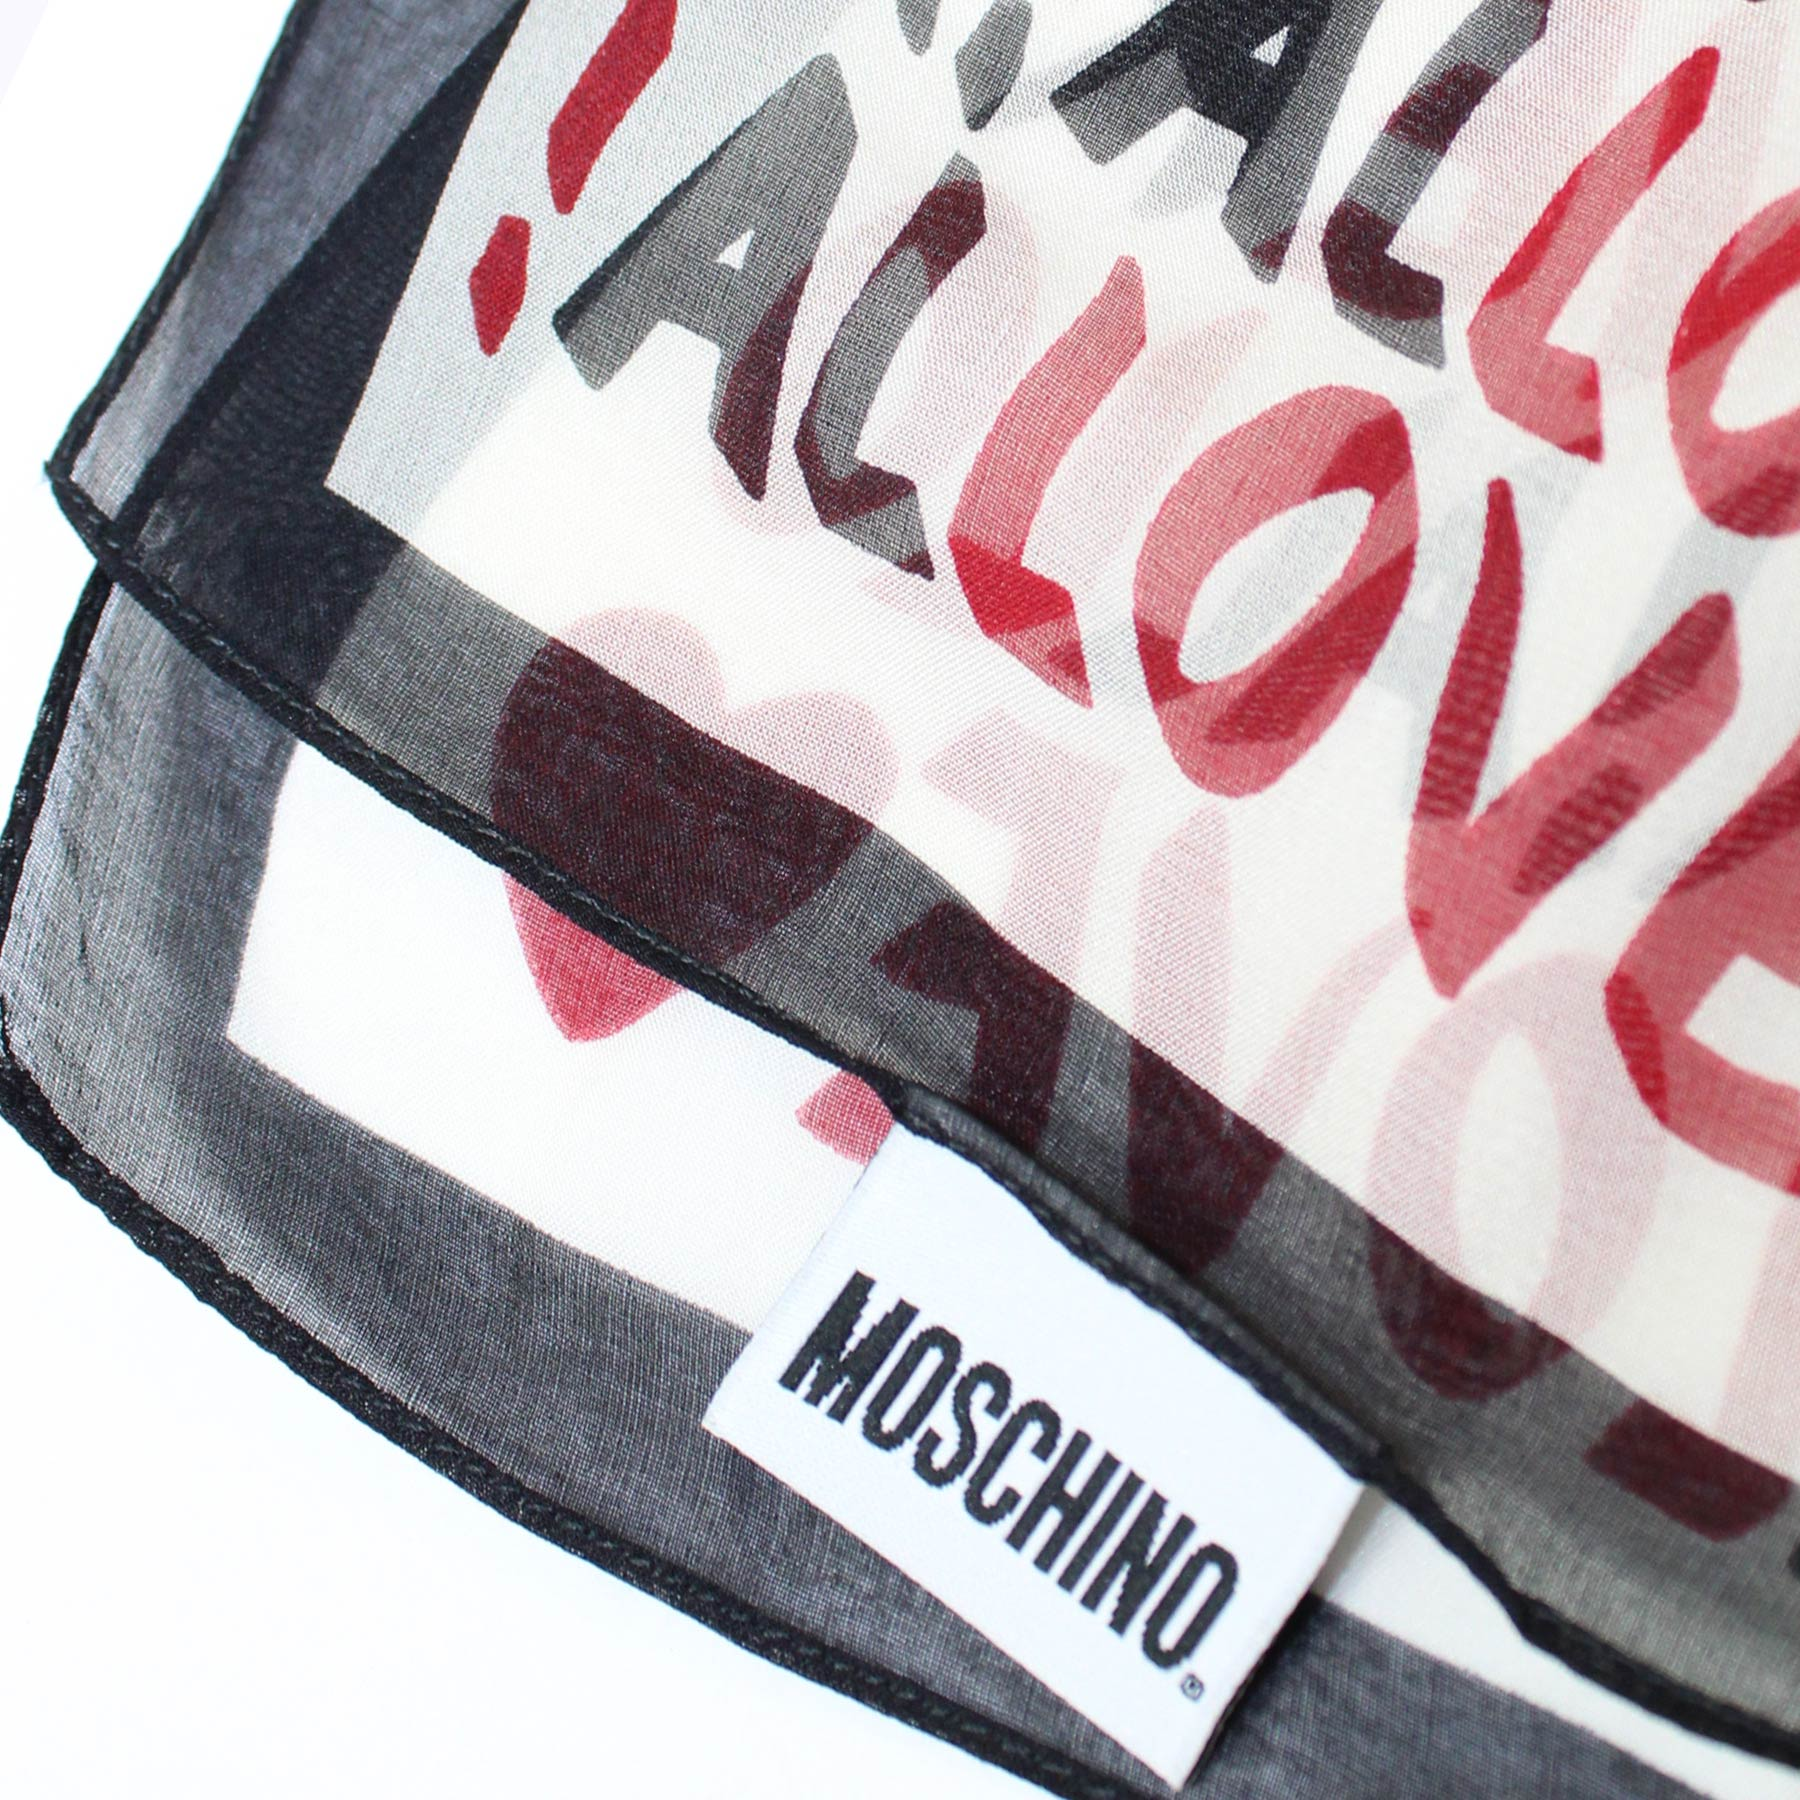 Moschino Silk Scarf AlLOVEer - Chiffon Silk Shawl